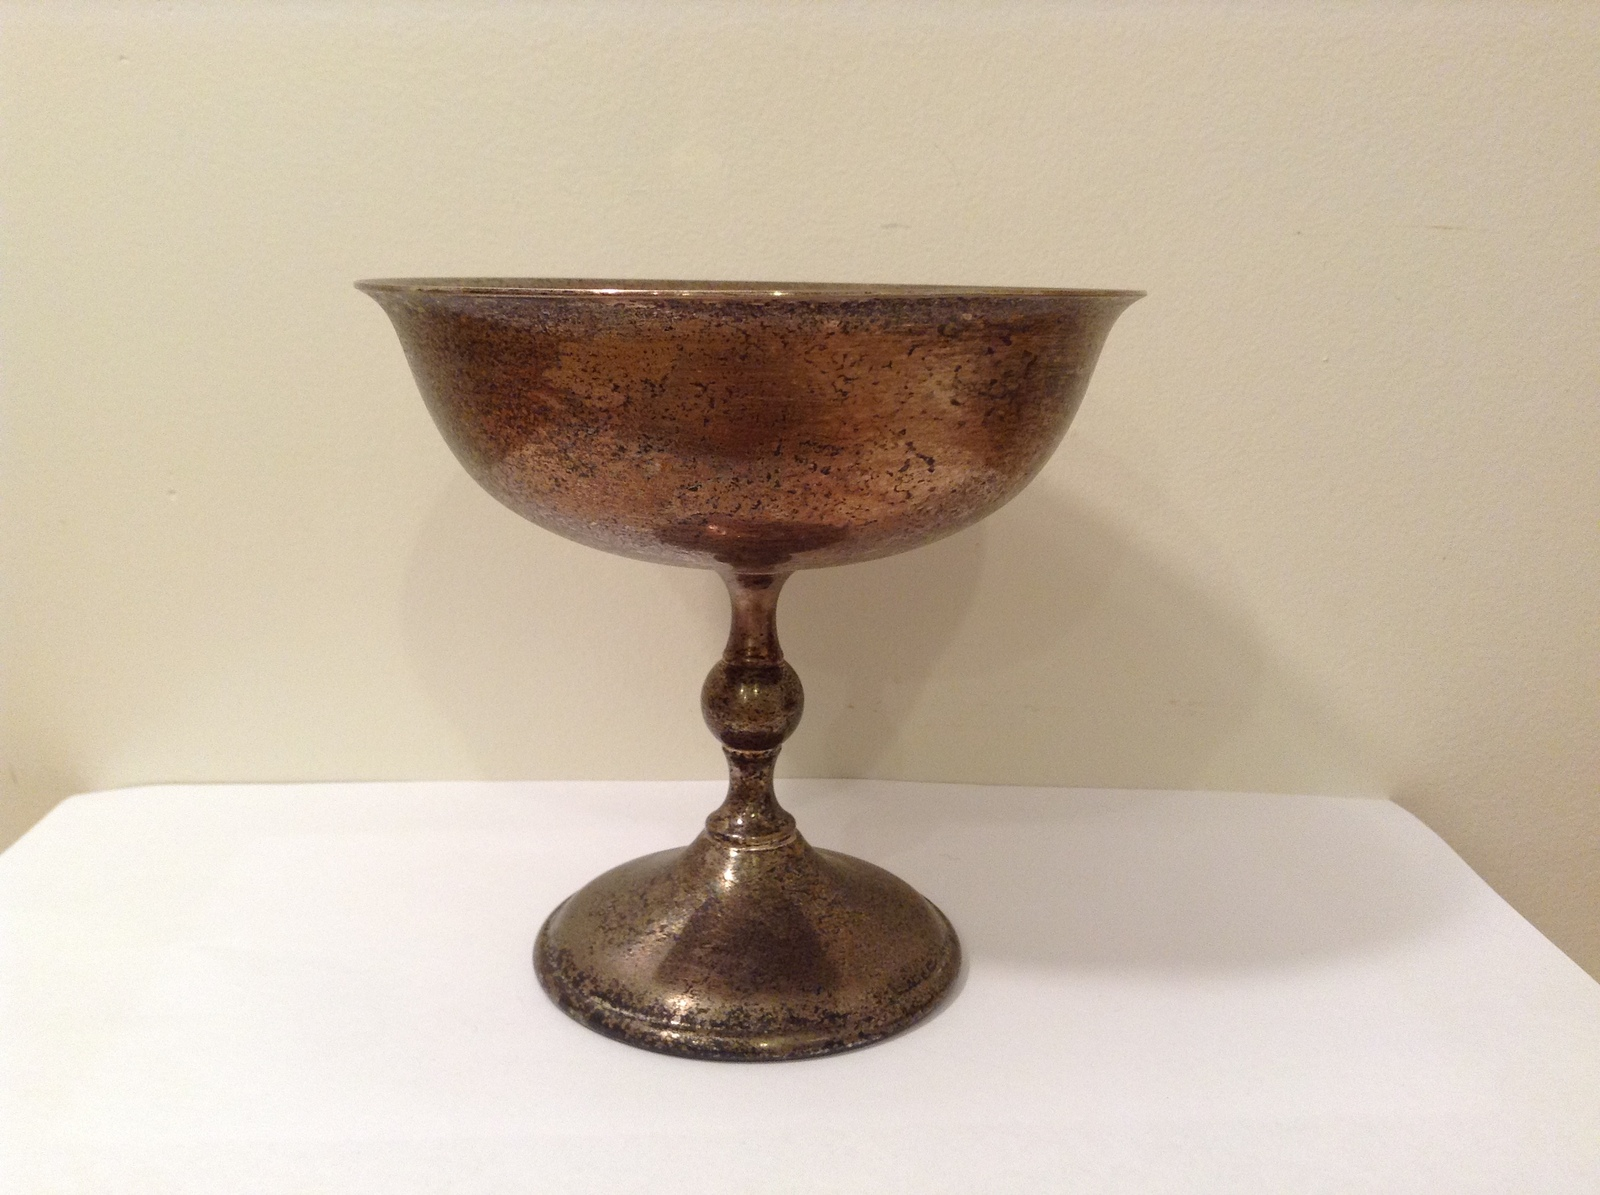 Vintage WA Italy Goblet / Wine Cup Silver Plated Natural Patina